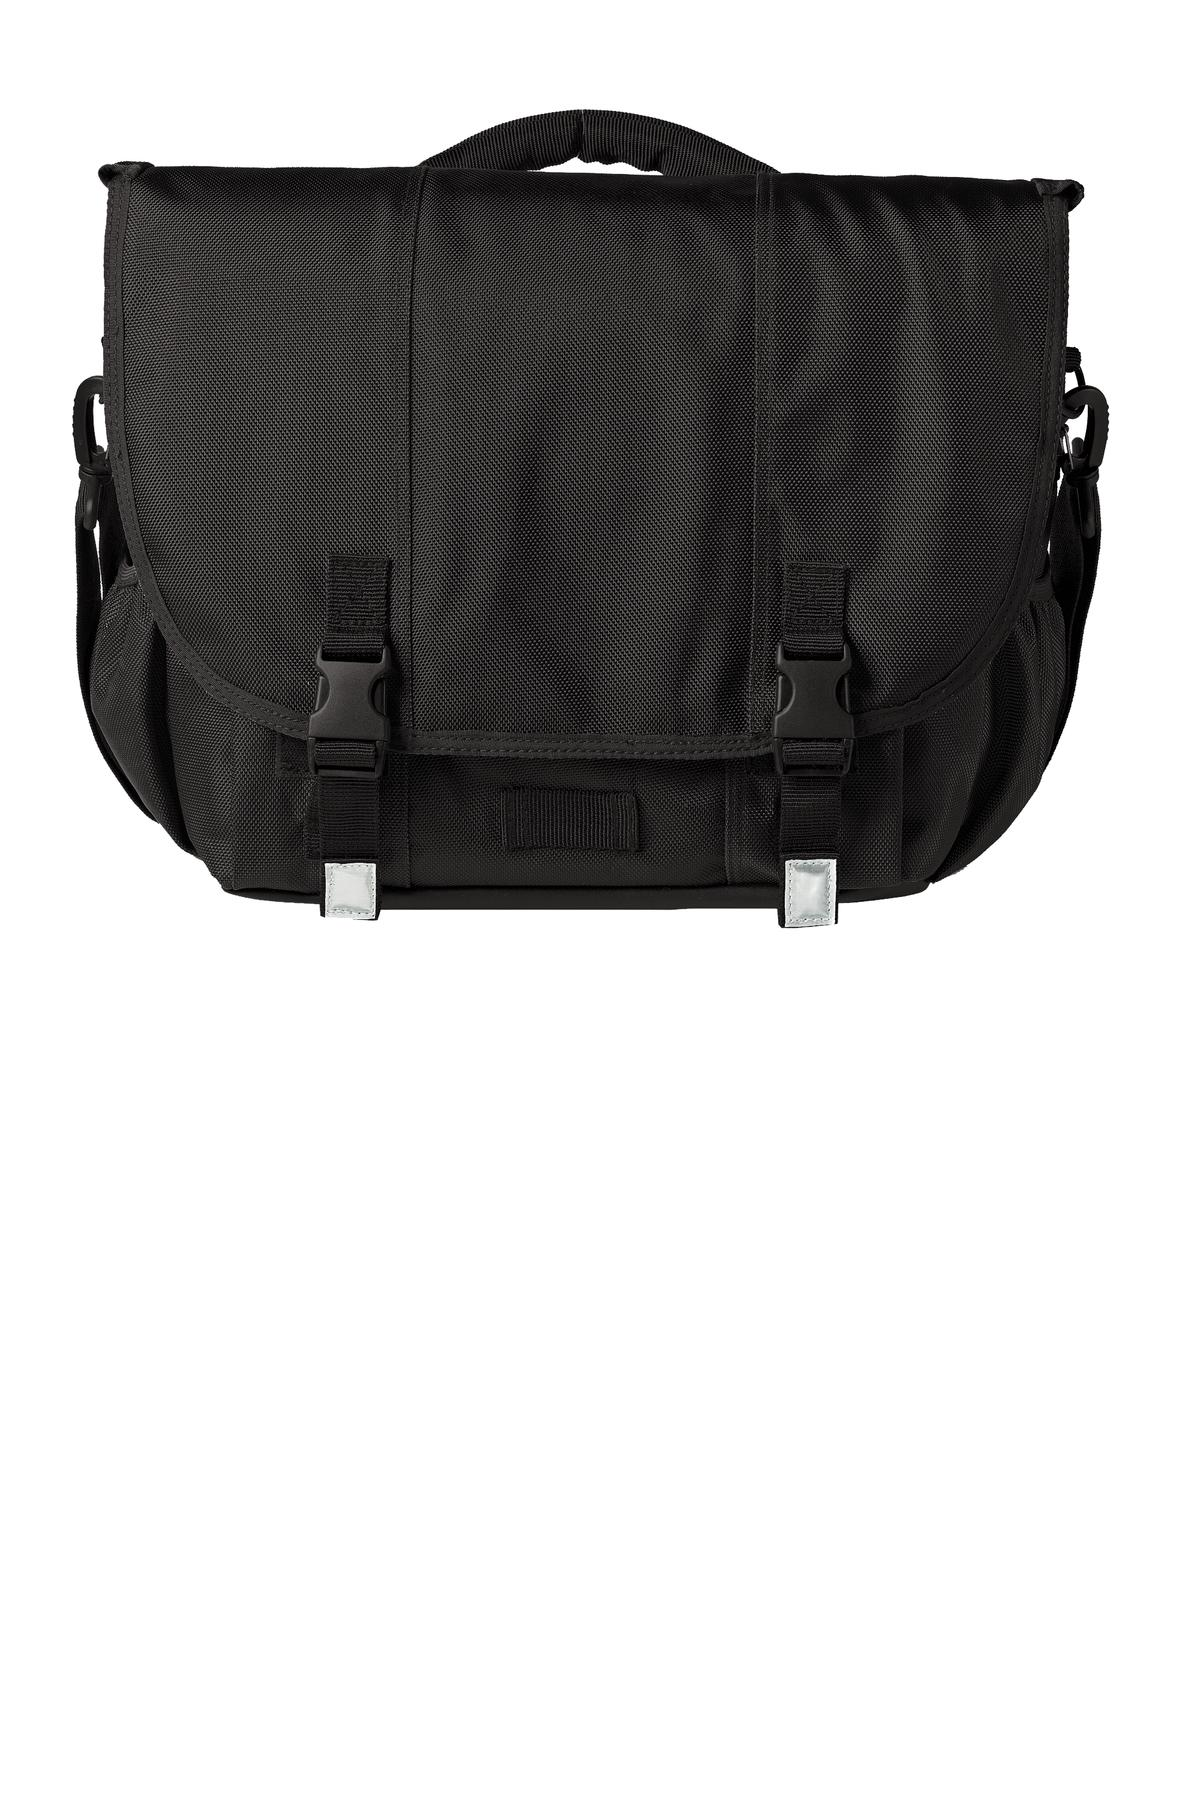 District ®  - Montezuma ®  Messenger Bag.  DT700